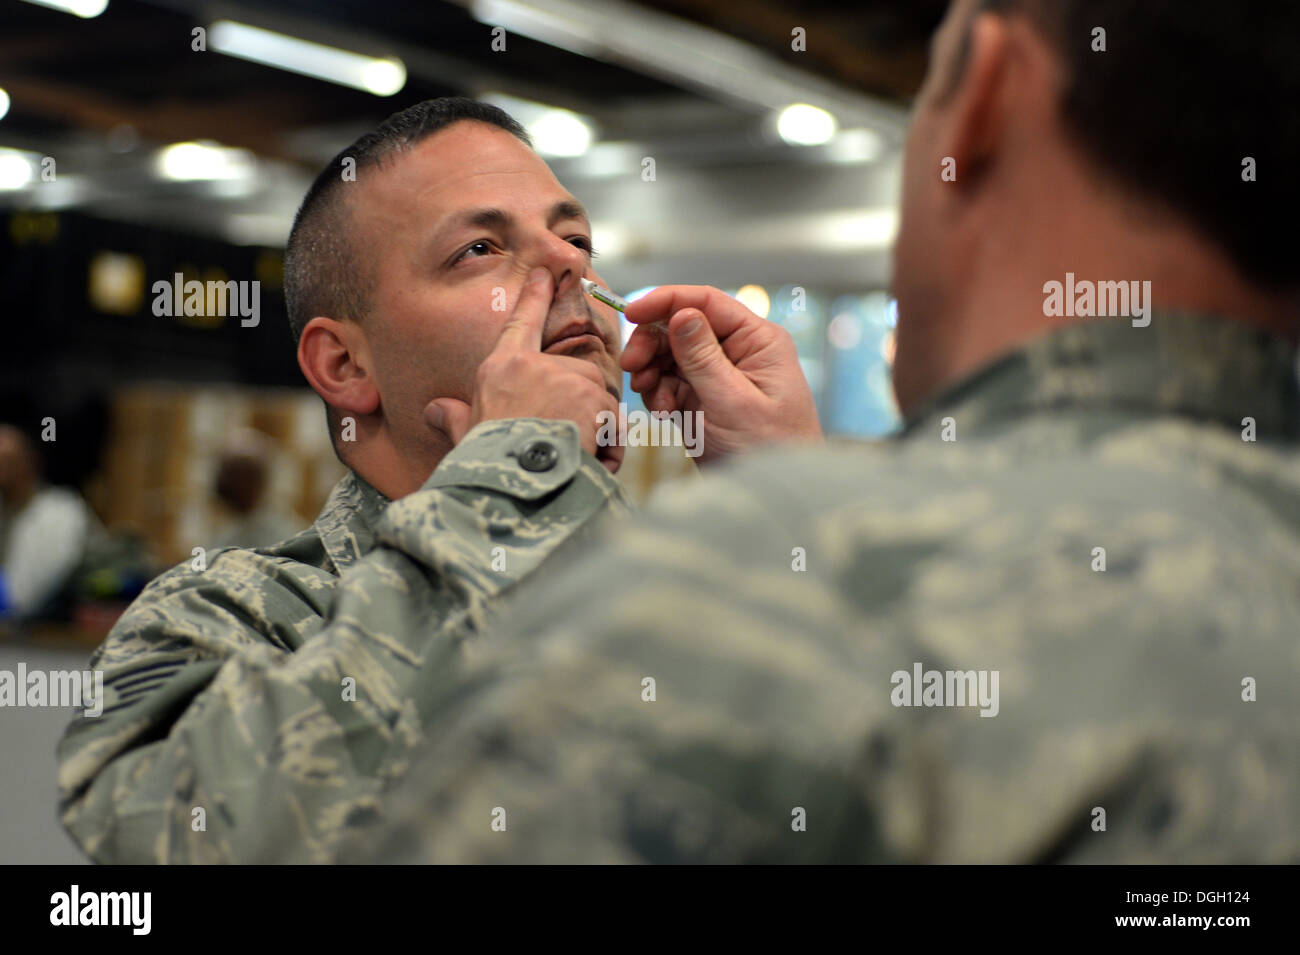 SPANGDAHLEM AIR BASE, Germany—Tech. Sgt. Damian Horton, 52nd Aircraft Maintenance Squadron flightline expediter, from Cooper City, Fla., receives his flu mist injection during a medical exercise Oct. 16, 2013. The 52nd Public Health Emergency Office lever - Stock Image